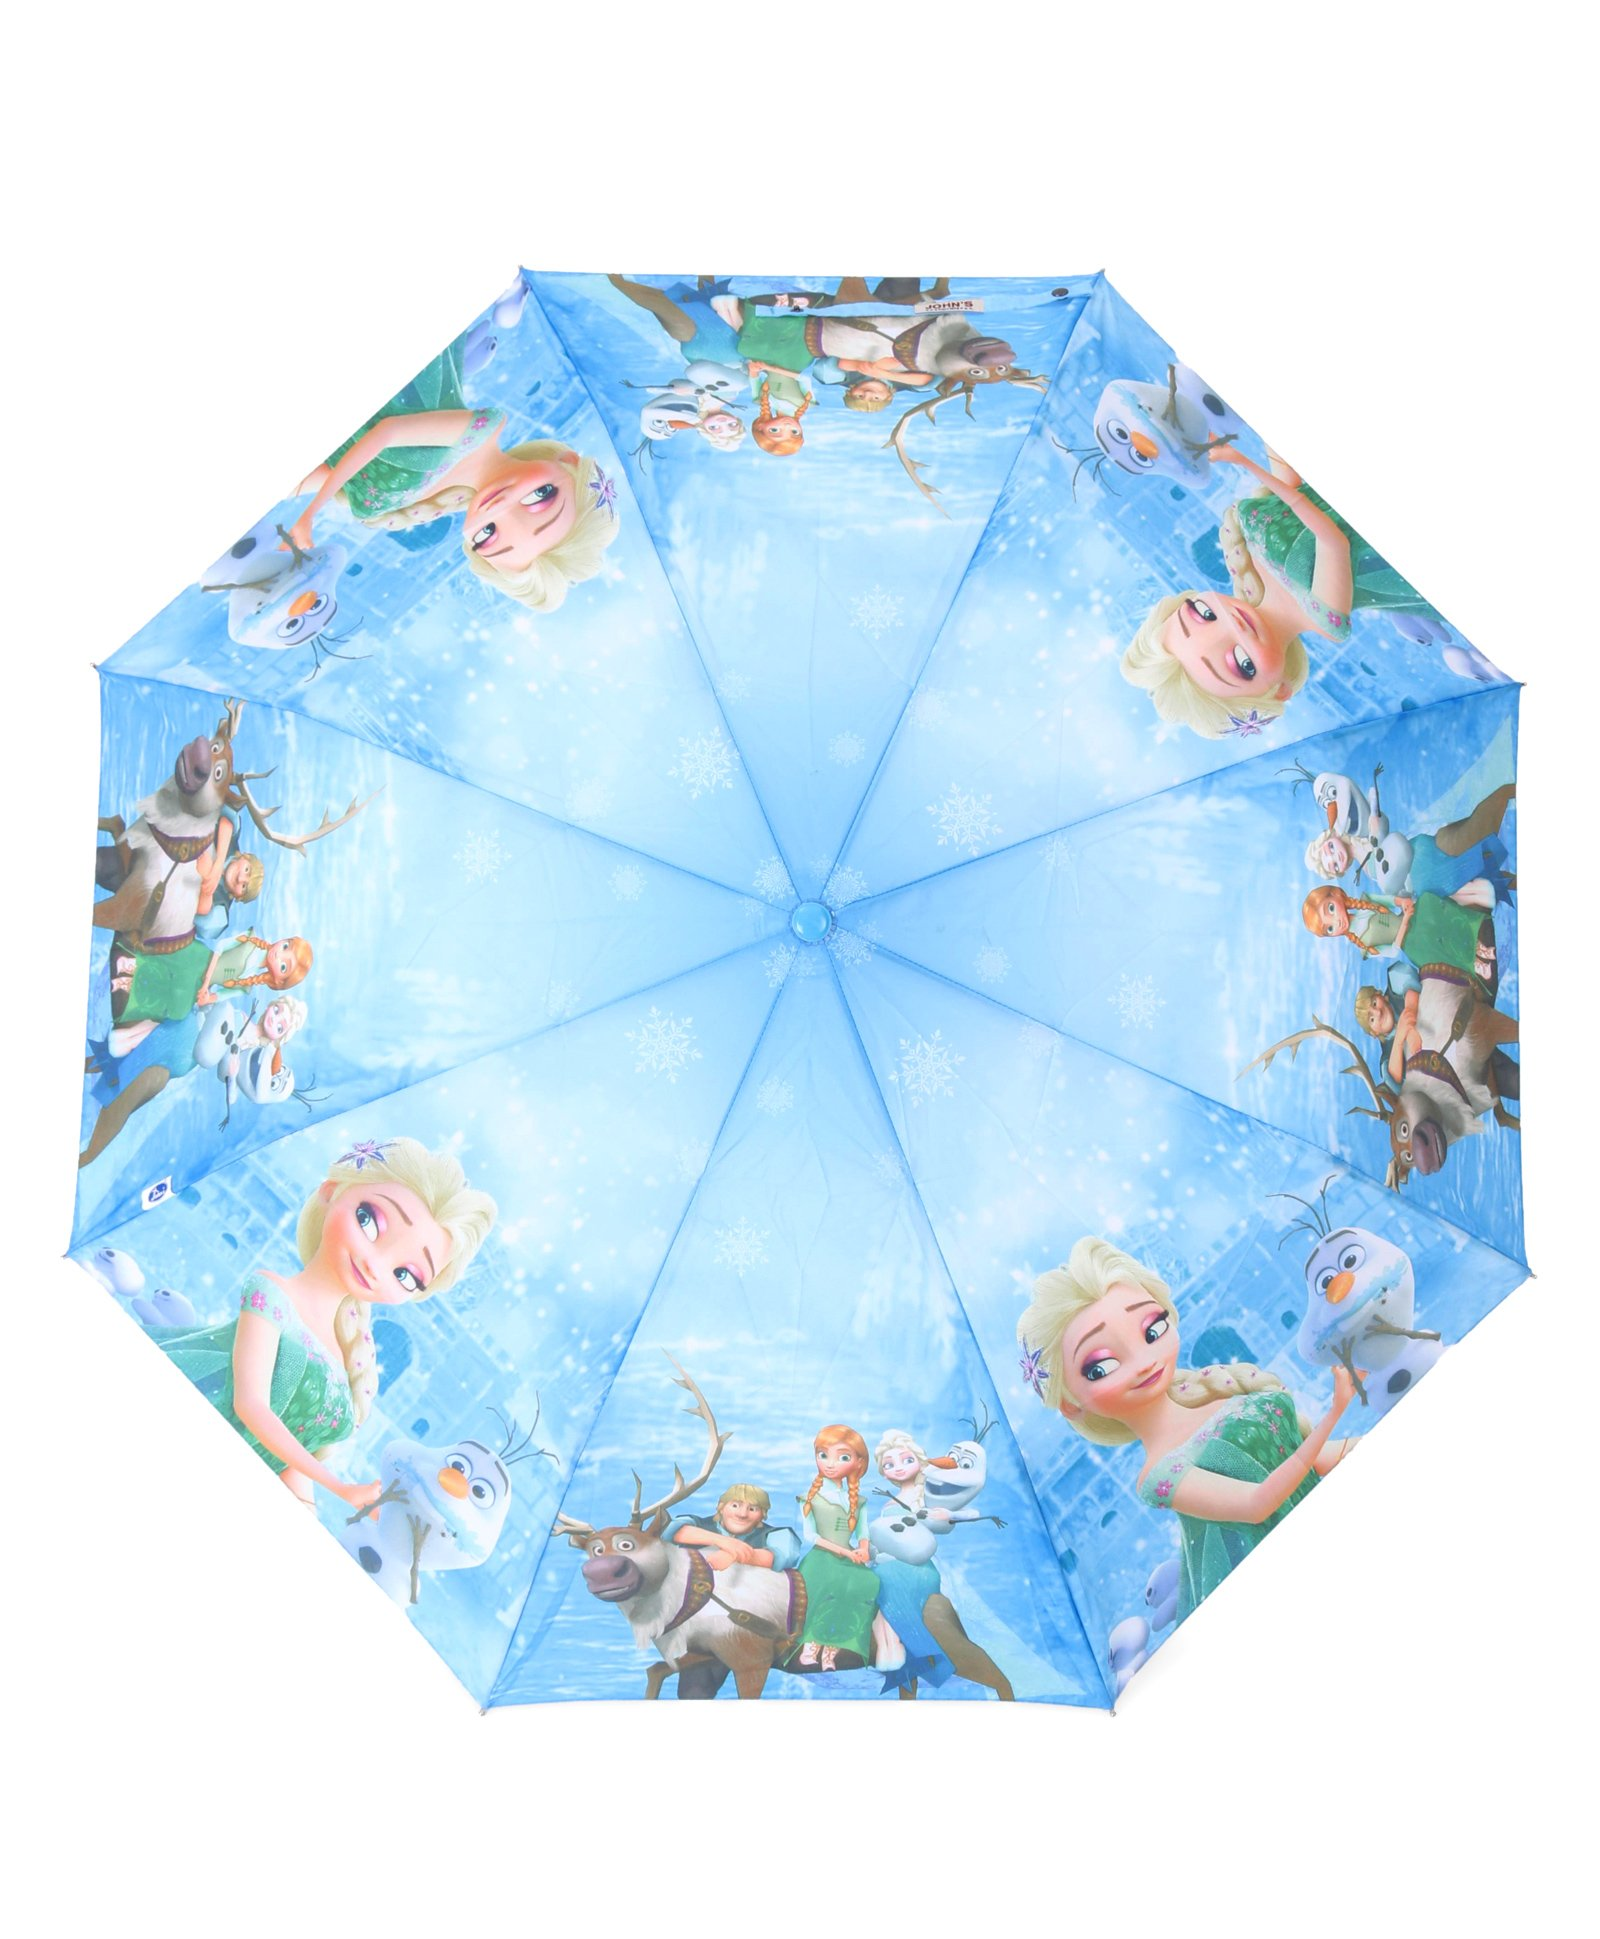 graphic regarding Umbrella Pattern Printable Free named Johns Umbrellas With Whistles Frozen Princess Print Blue On the web inside India, Acquire at Least complicated Value in opposition to - 2721158